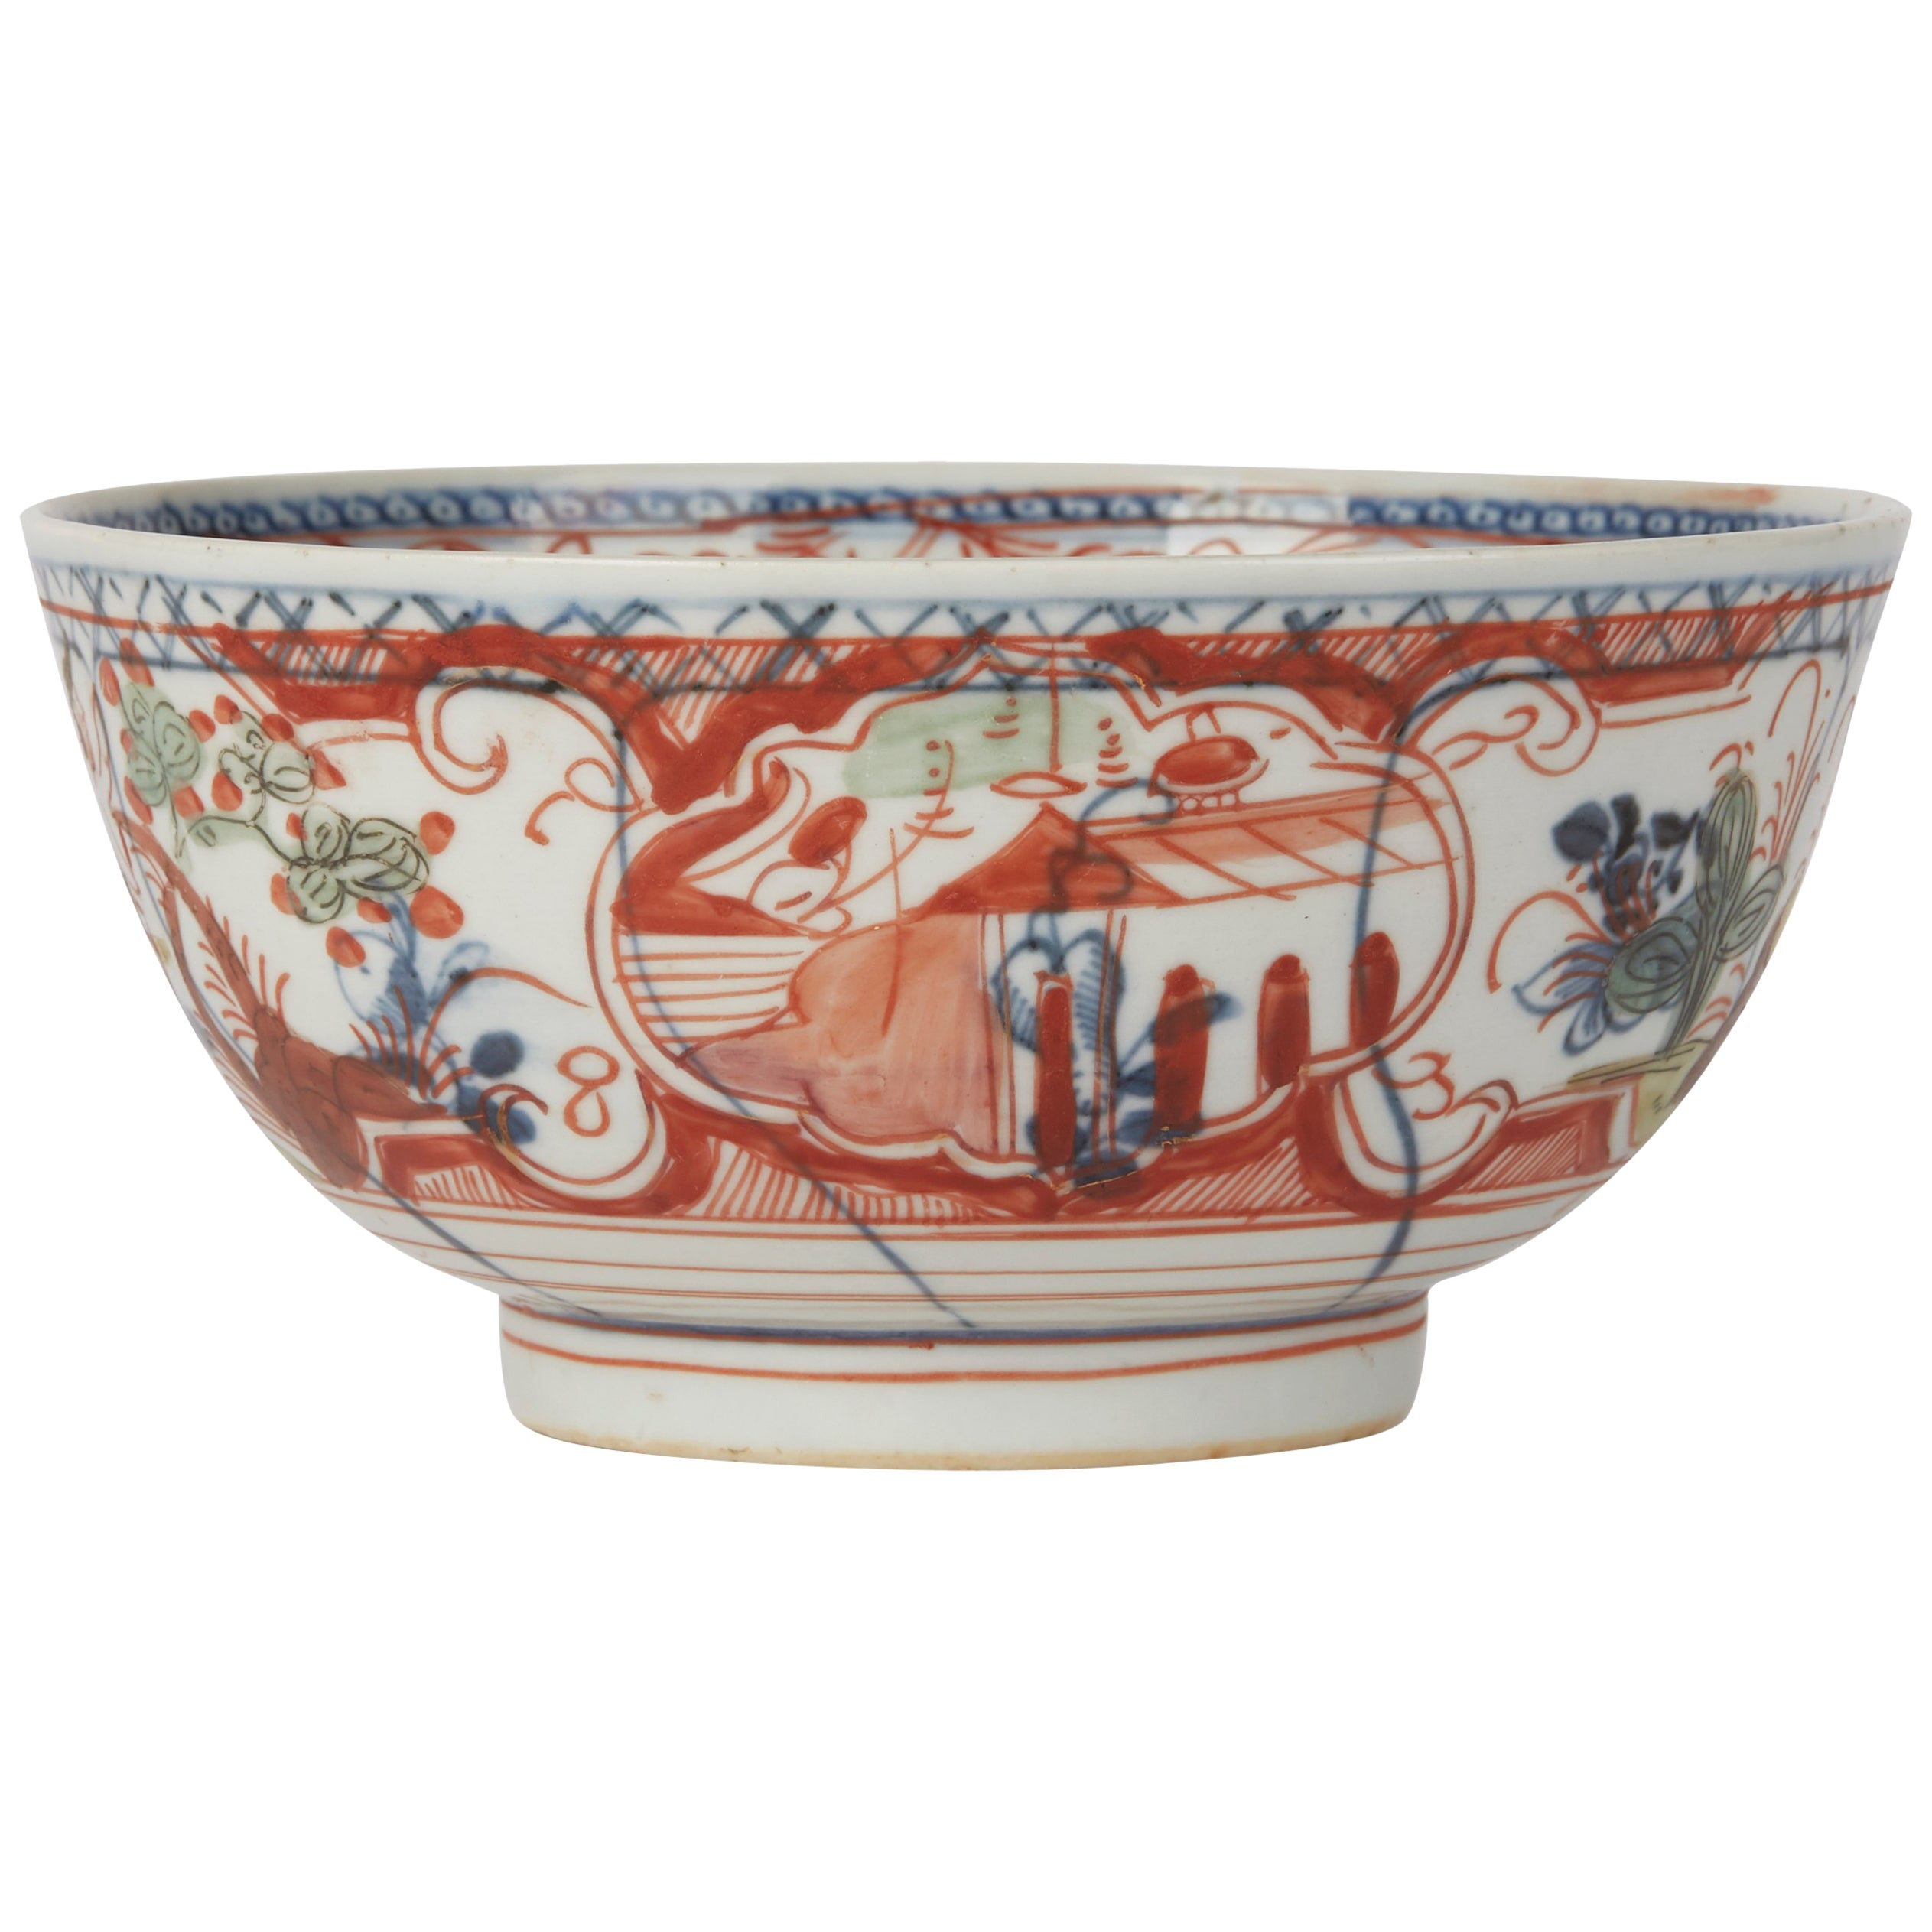 Chinese Overpainted Porcelain Bowl with Figures, 1720-1740